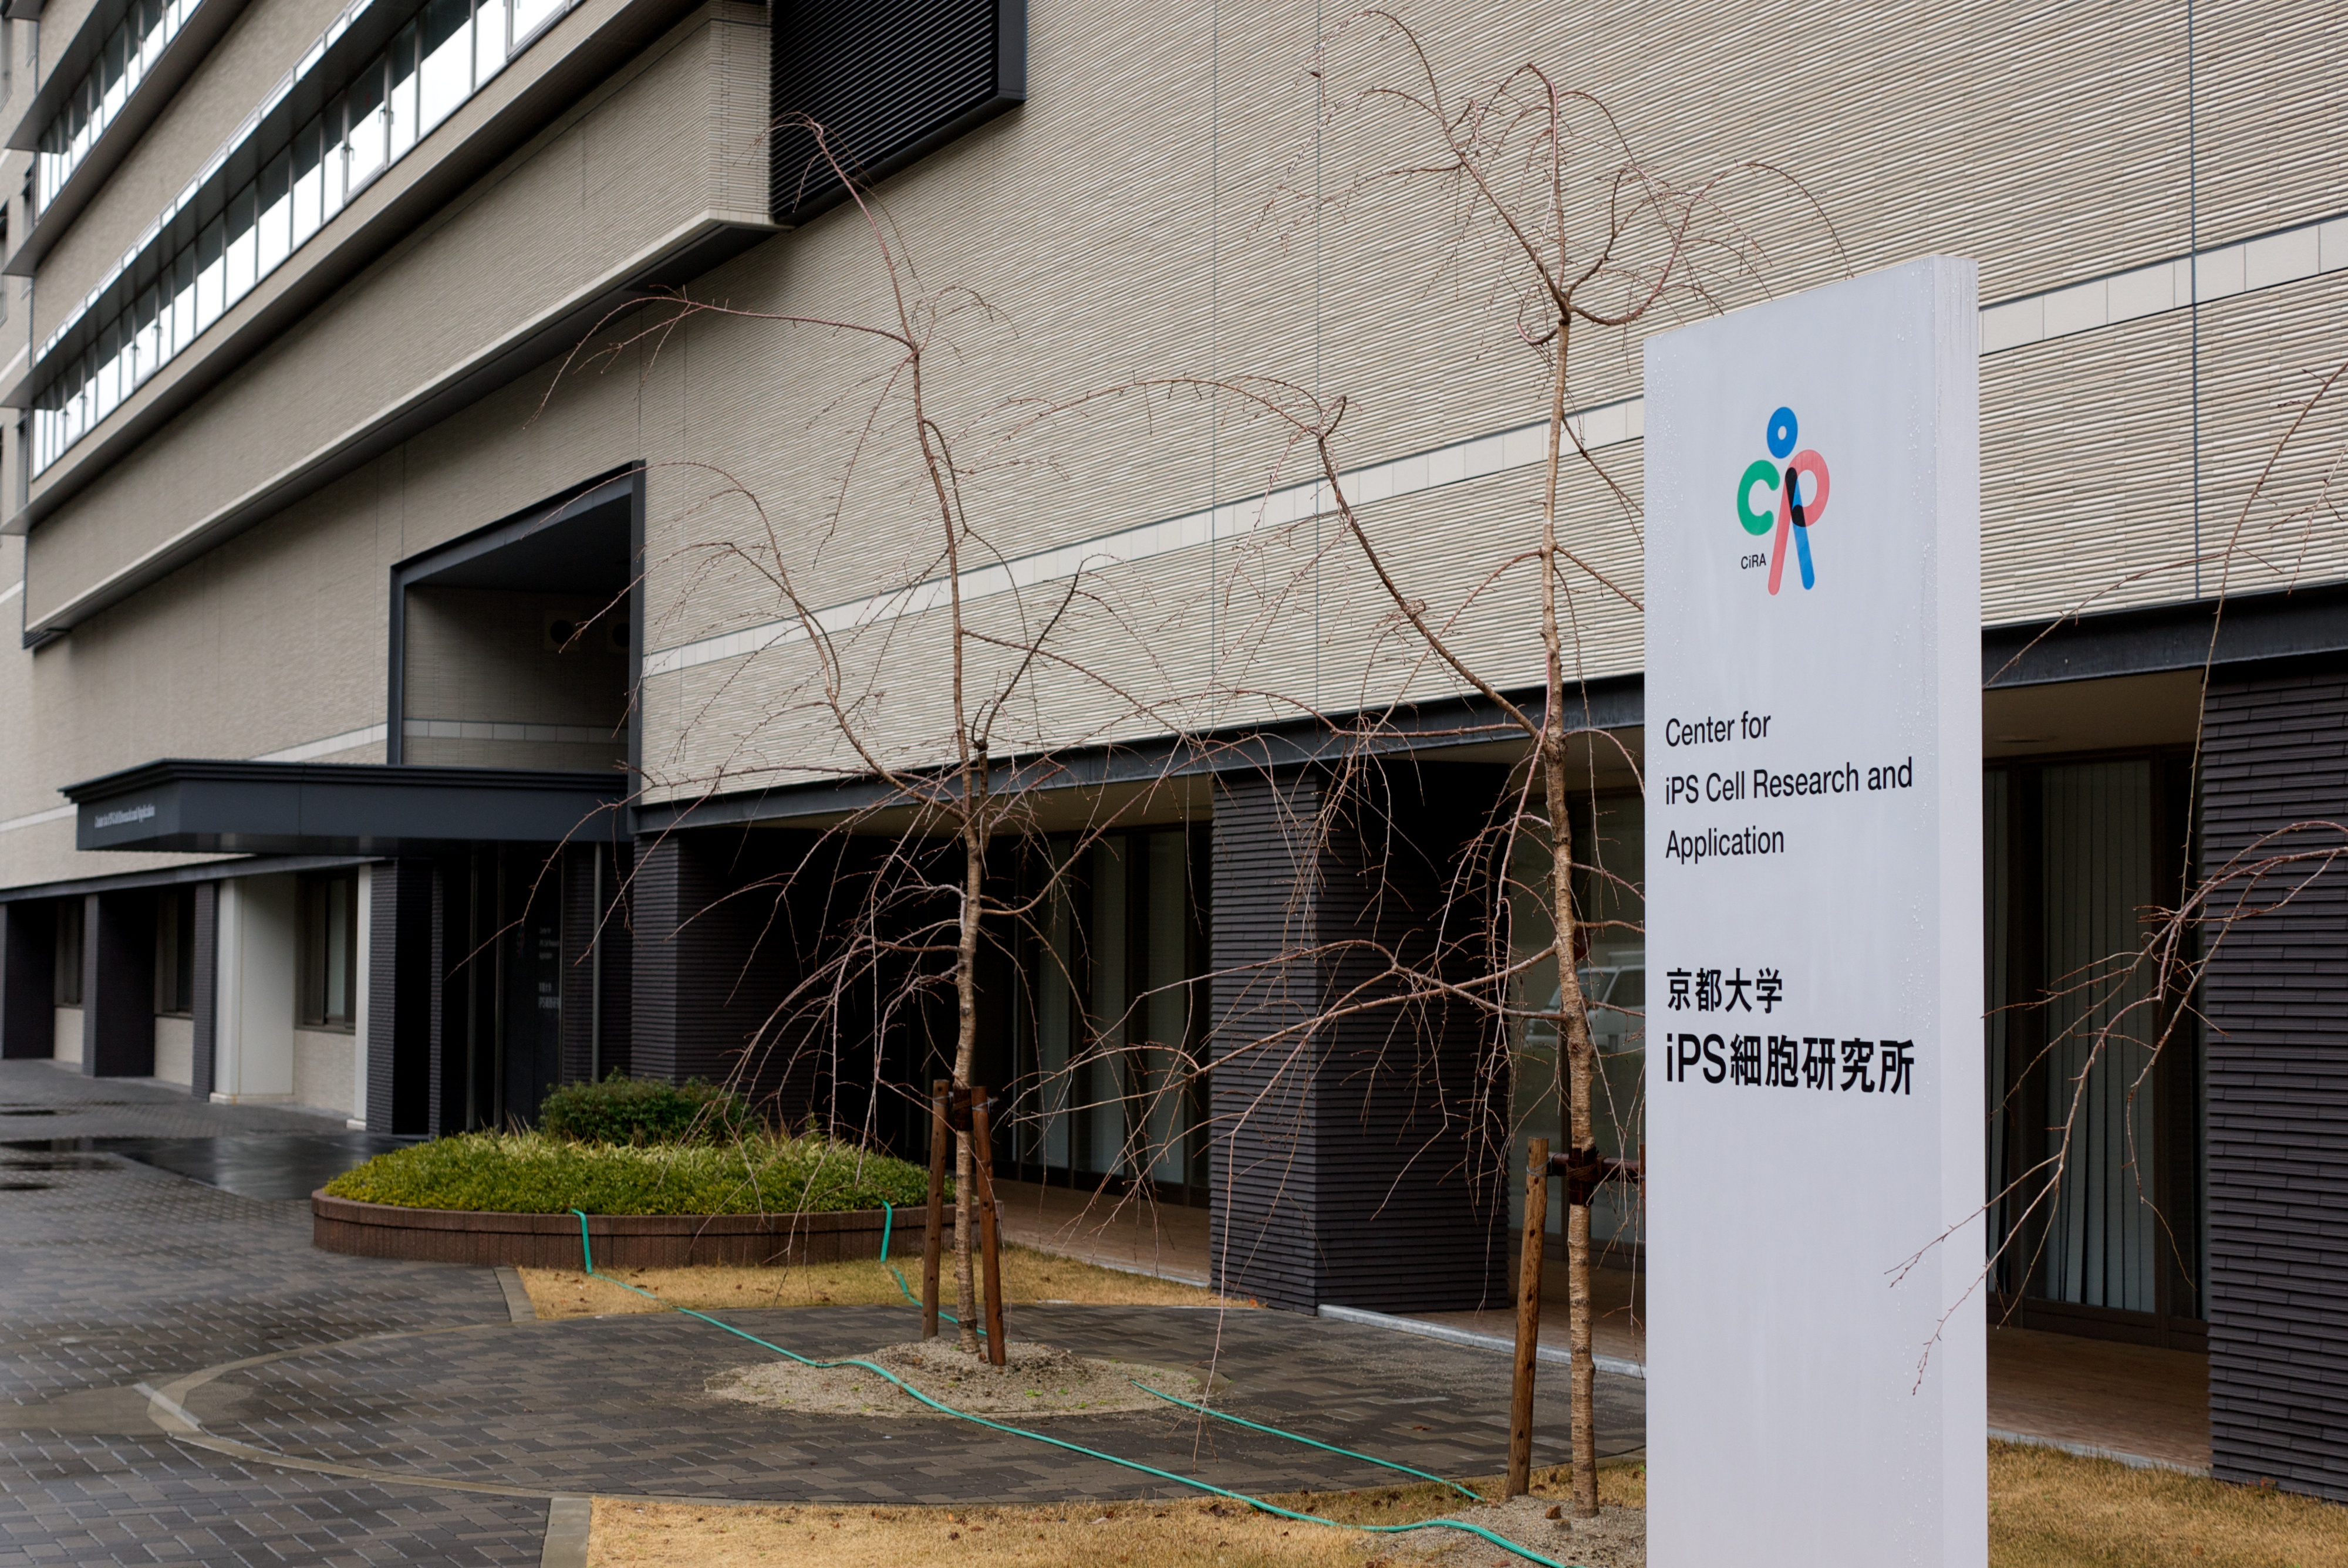 ... Center for iPS Cell Research and Application) at Kyoto University.jpg